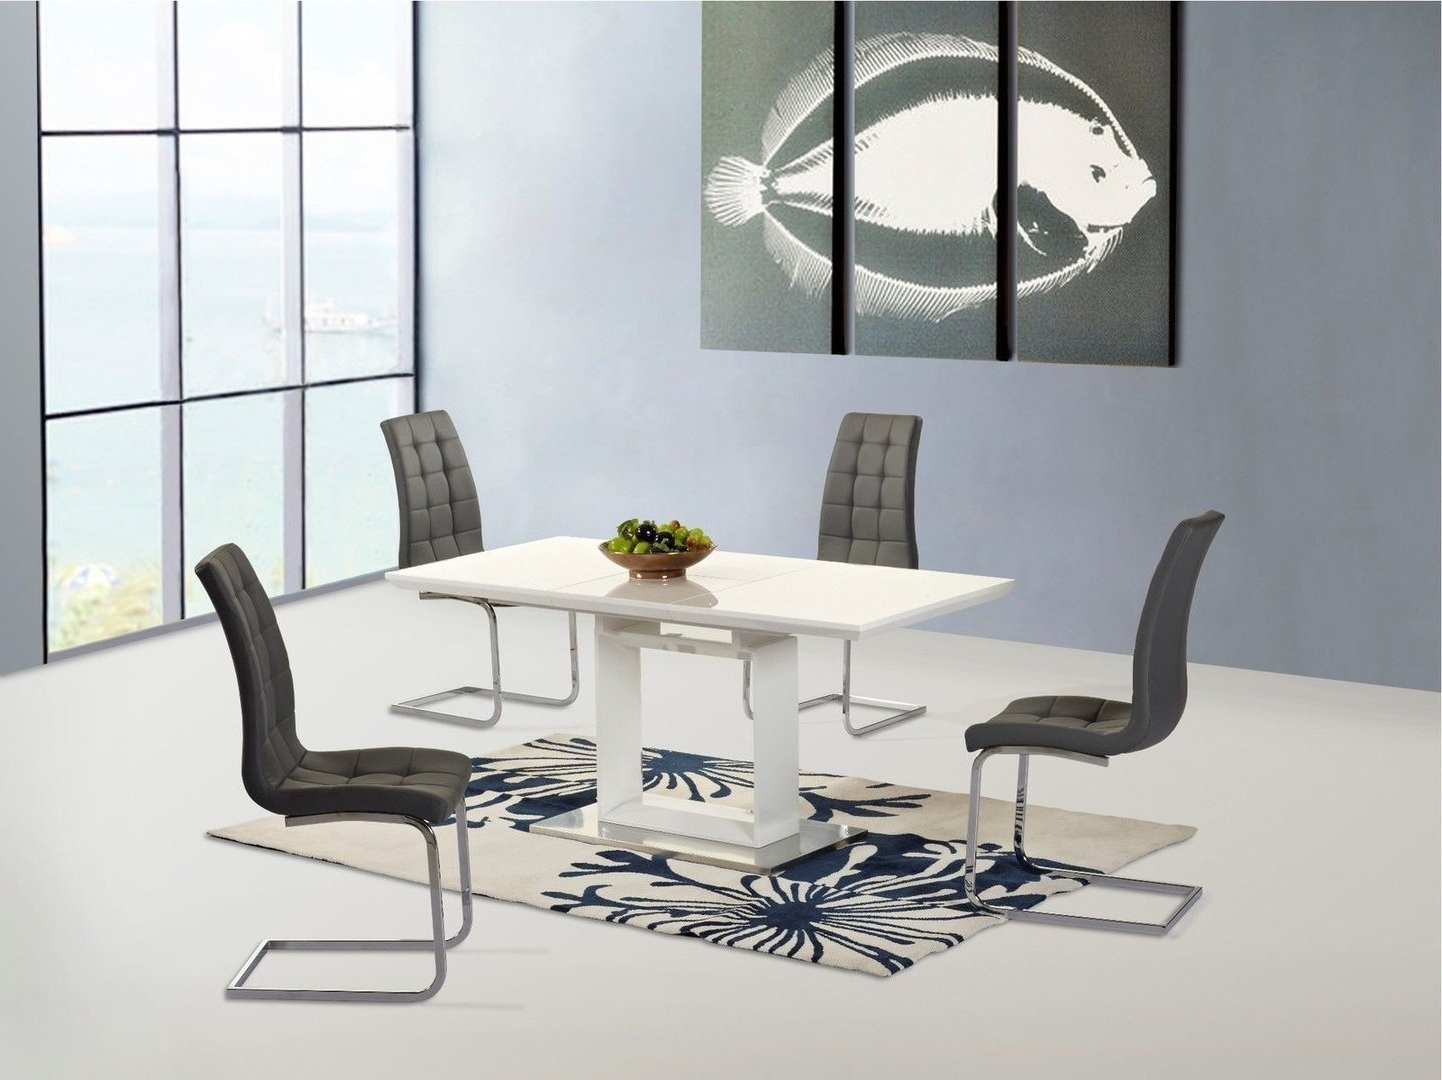 Newest New White High Gloss Extending Dining Table And 6 Grey Chairs For High Gloss White Extending Dining Tables (View 11 of 25)